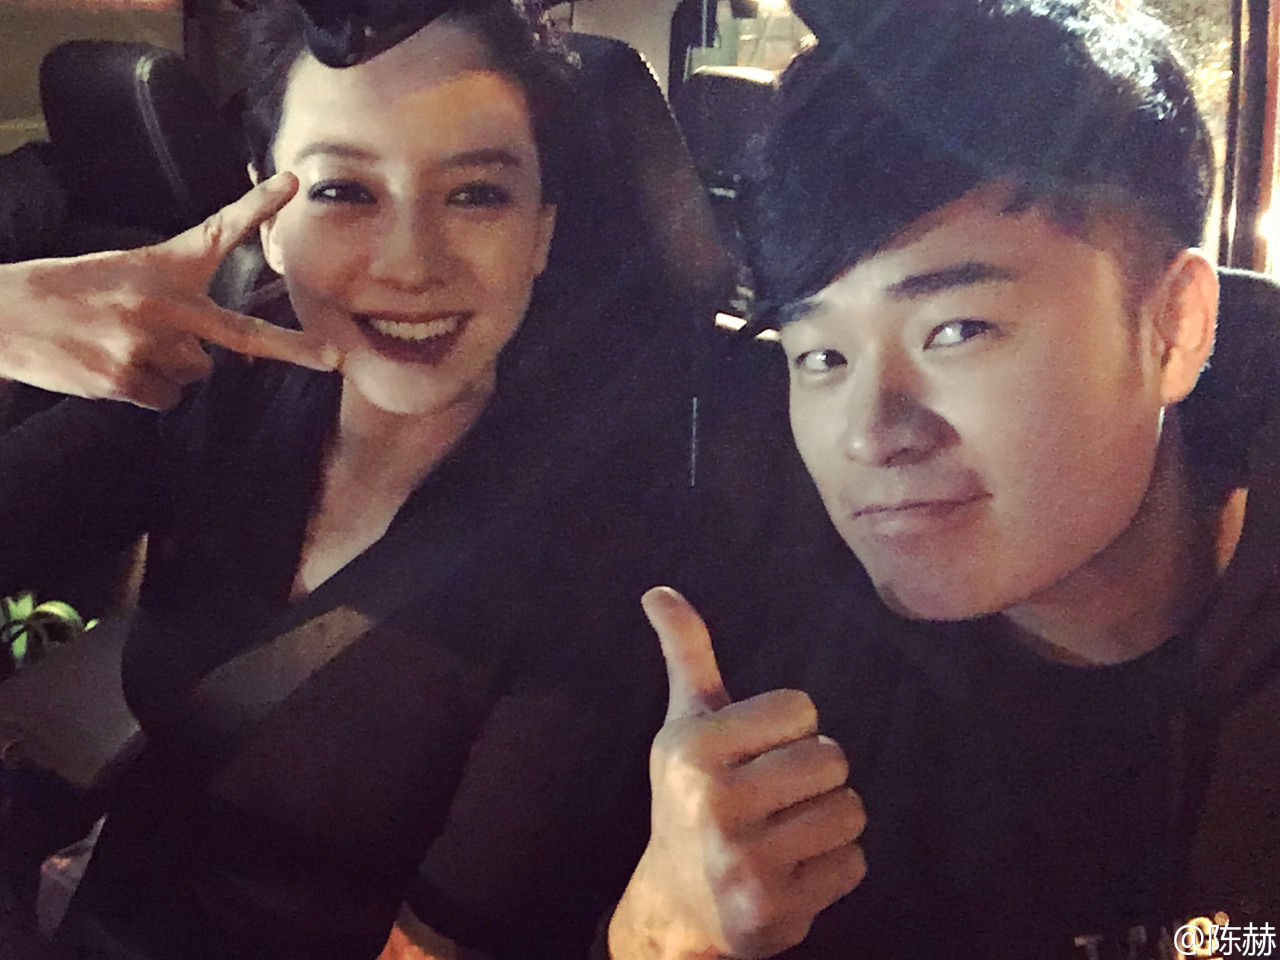 Ji Hyo Song And He Chen In Super Express 2016